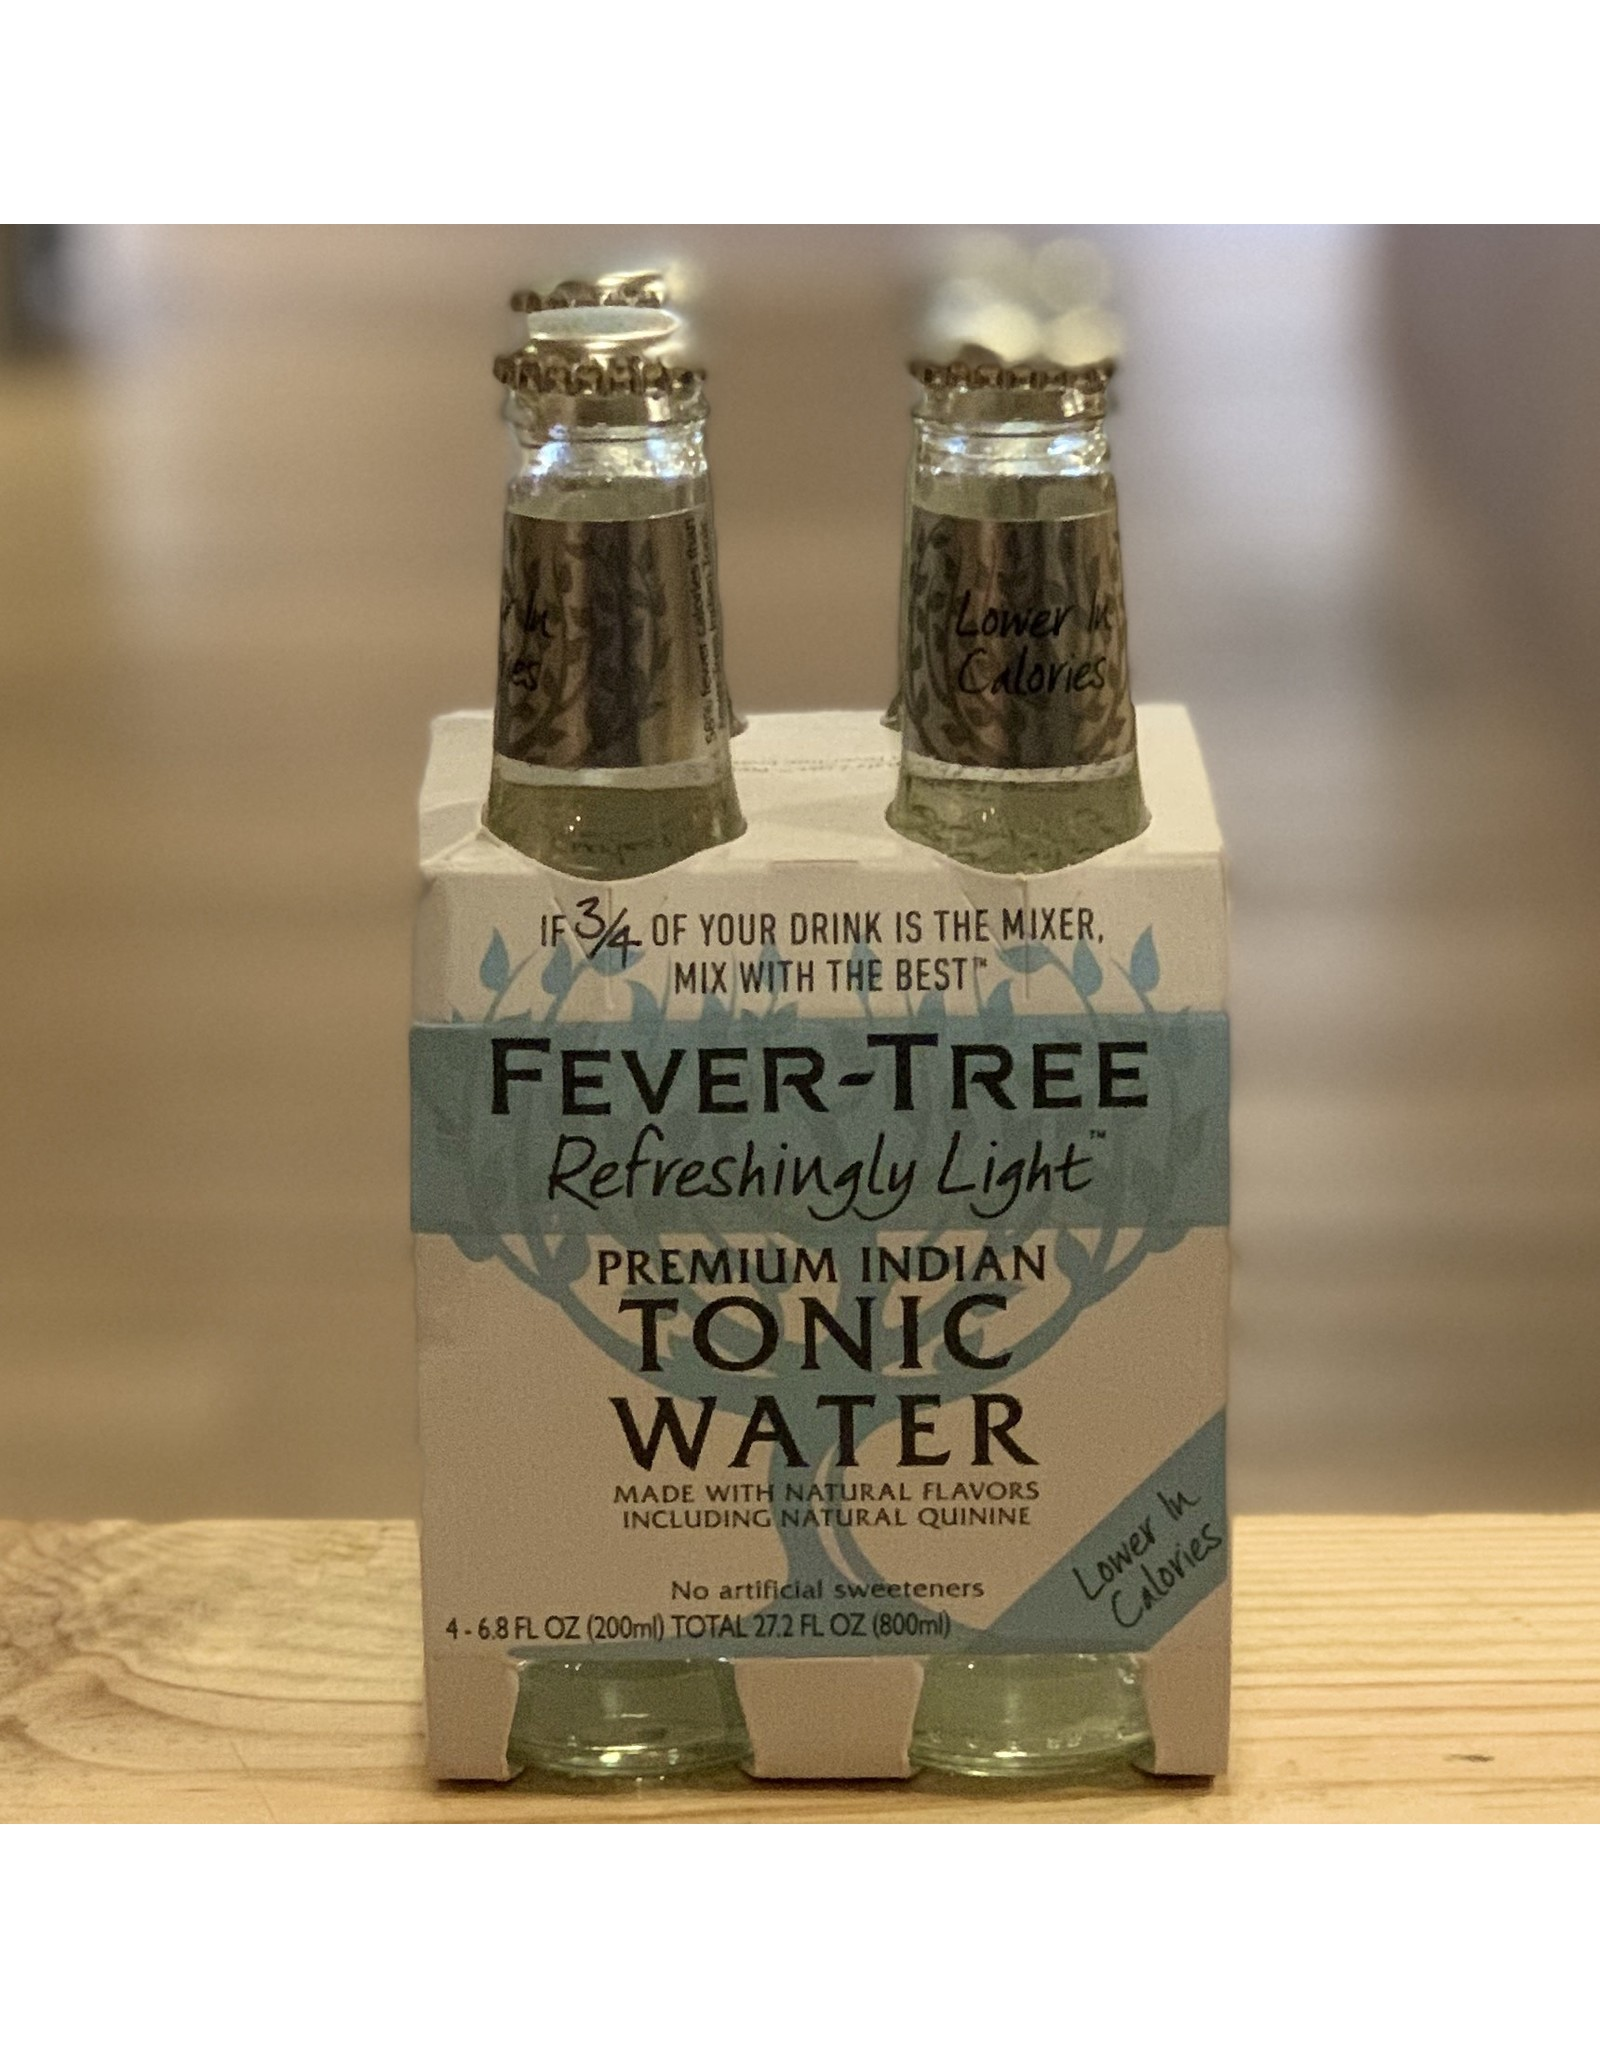 Mixers Fever Tree Light Tonic Water 200ml 4-pack